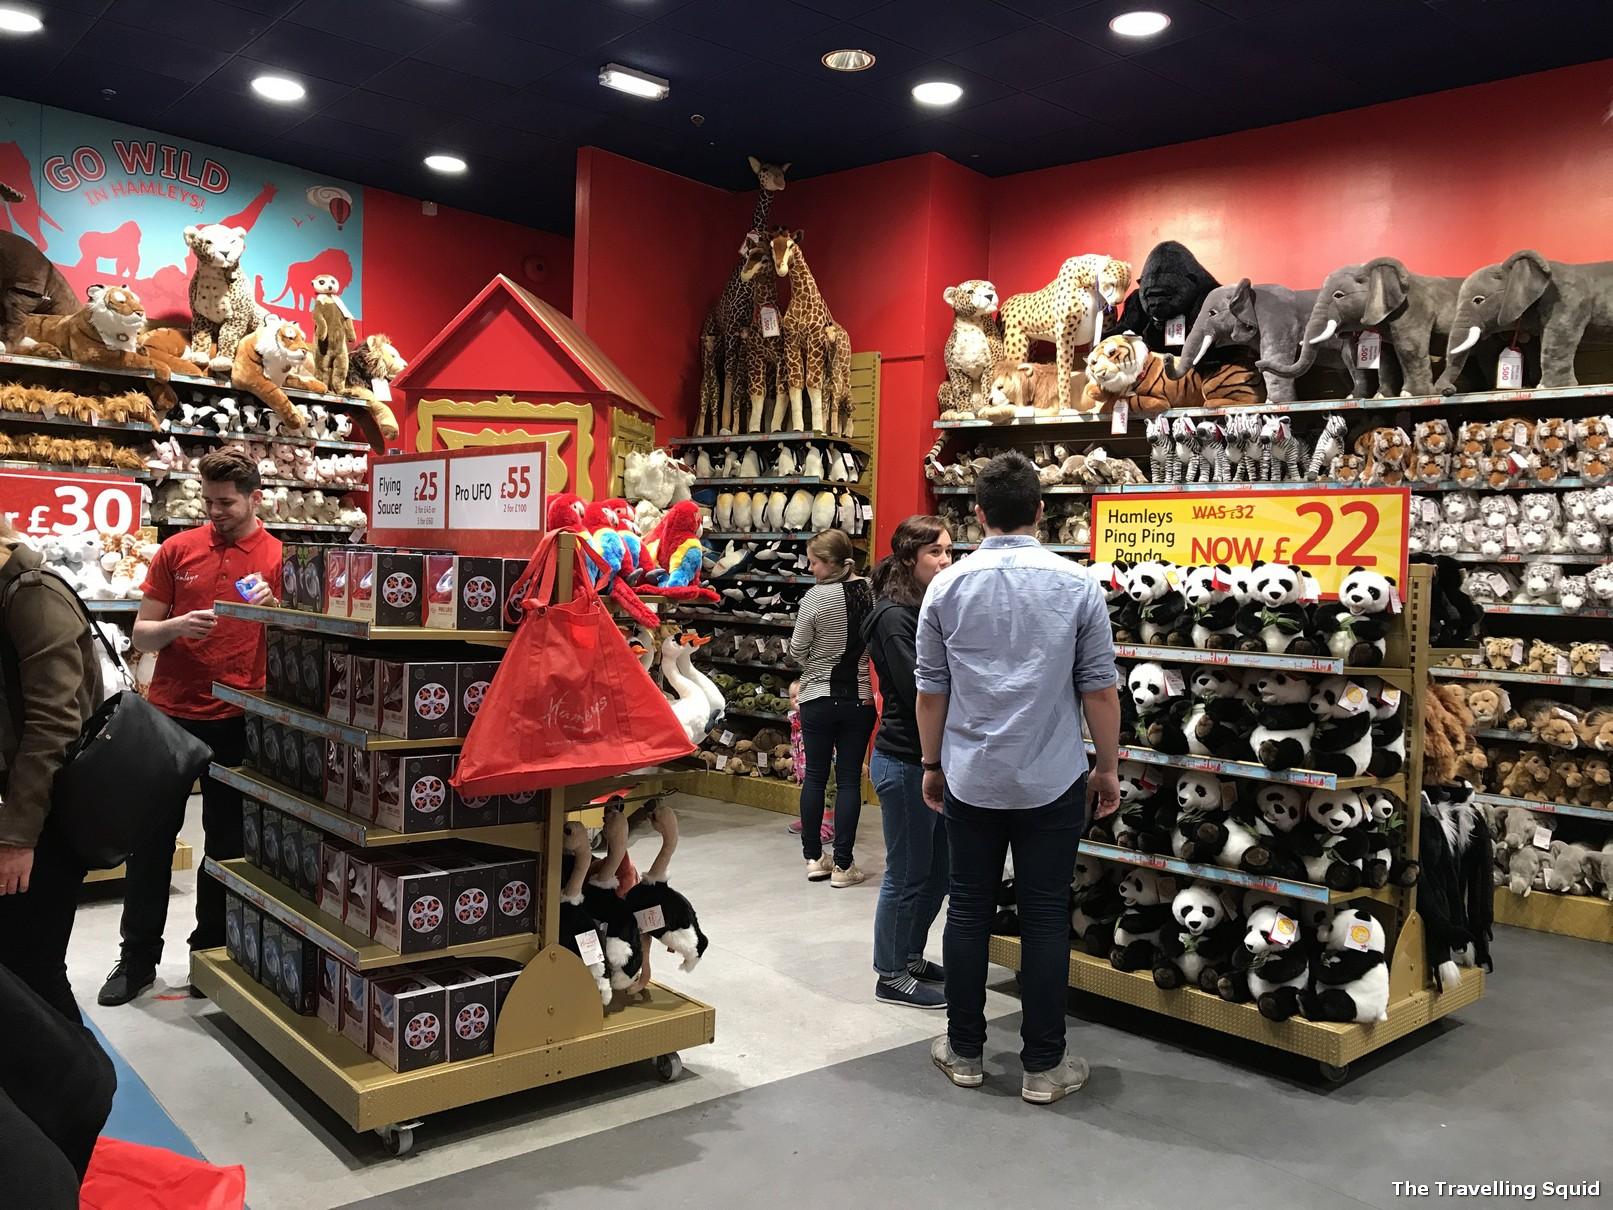 Toys From Hamleys : Visiting the hamleys toy store on regent street